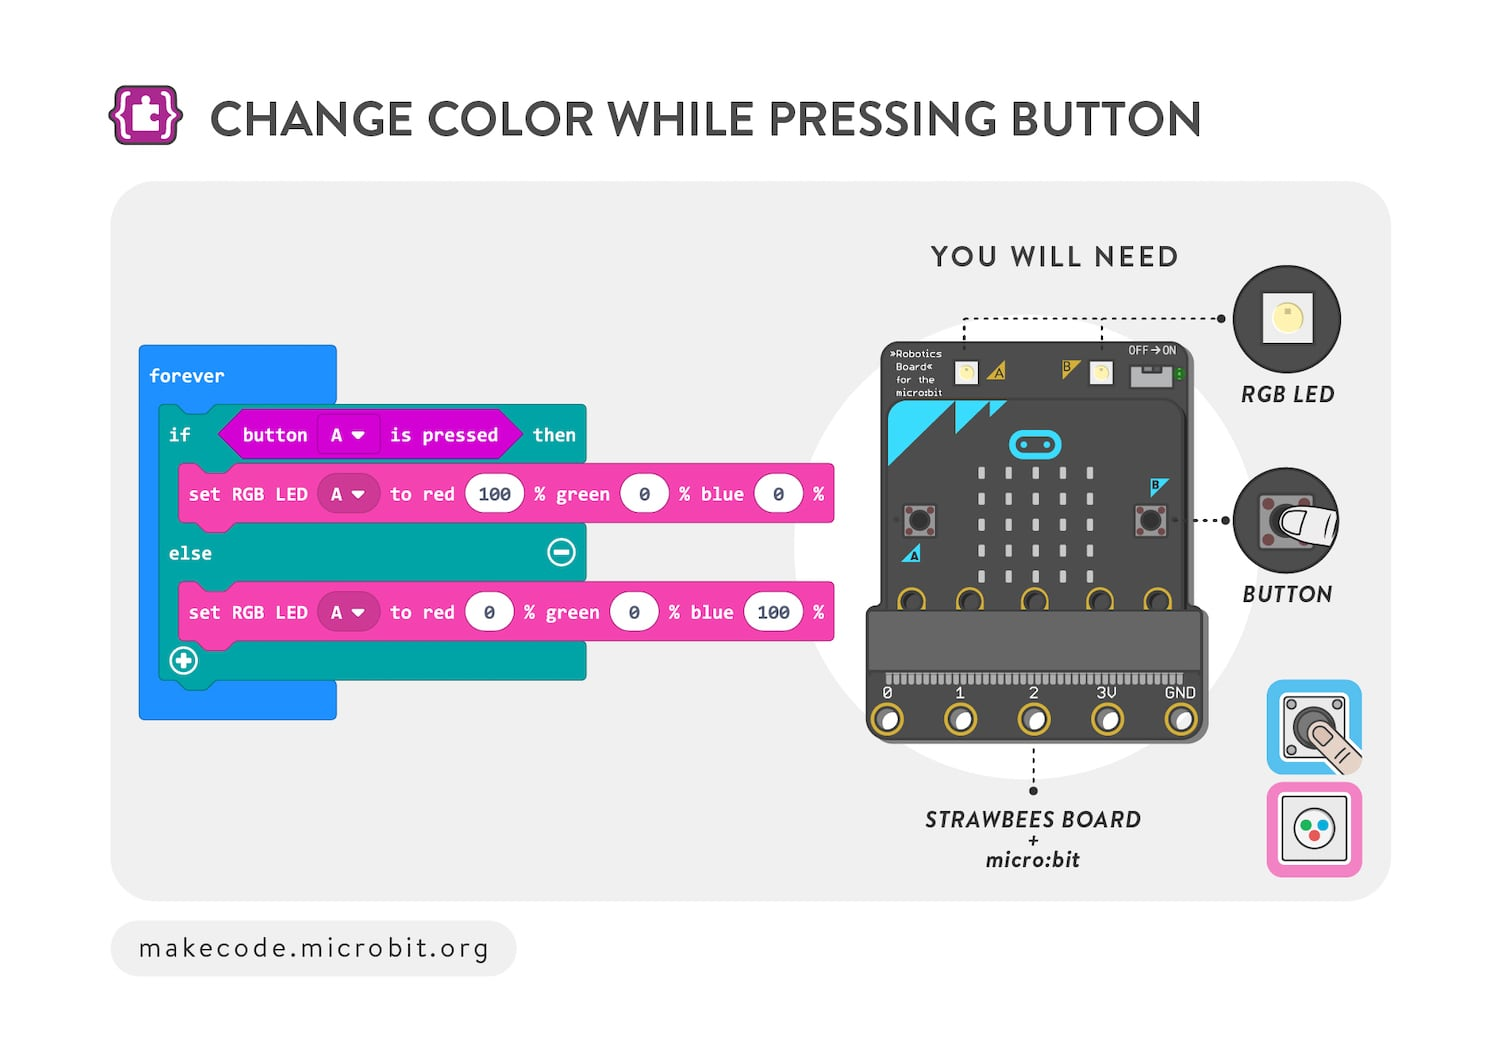 Change color while pressing button